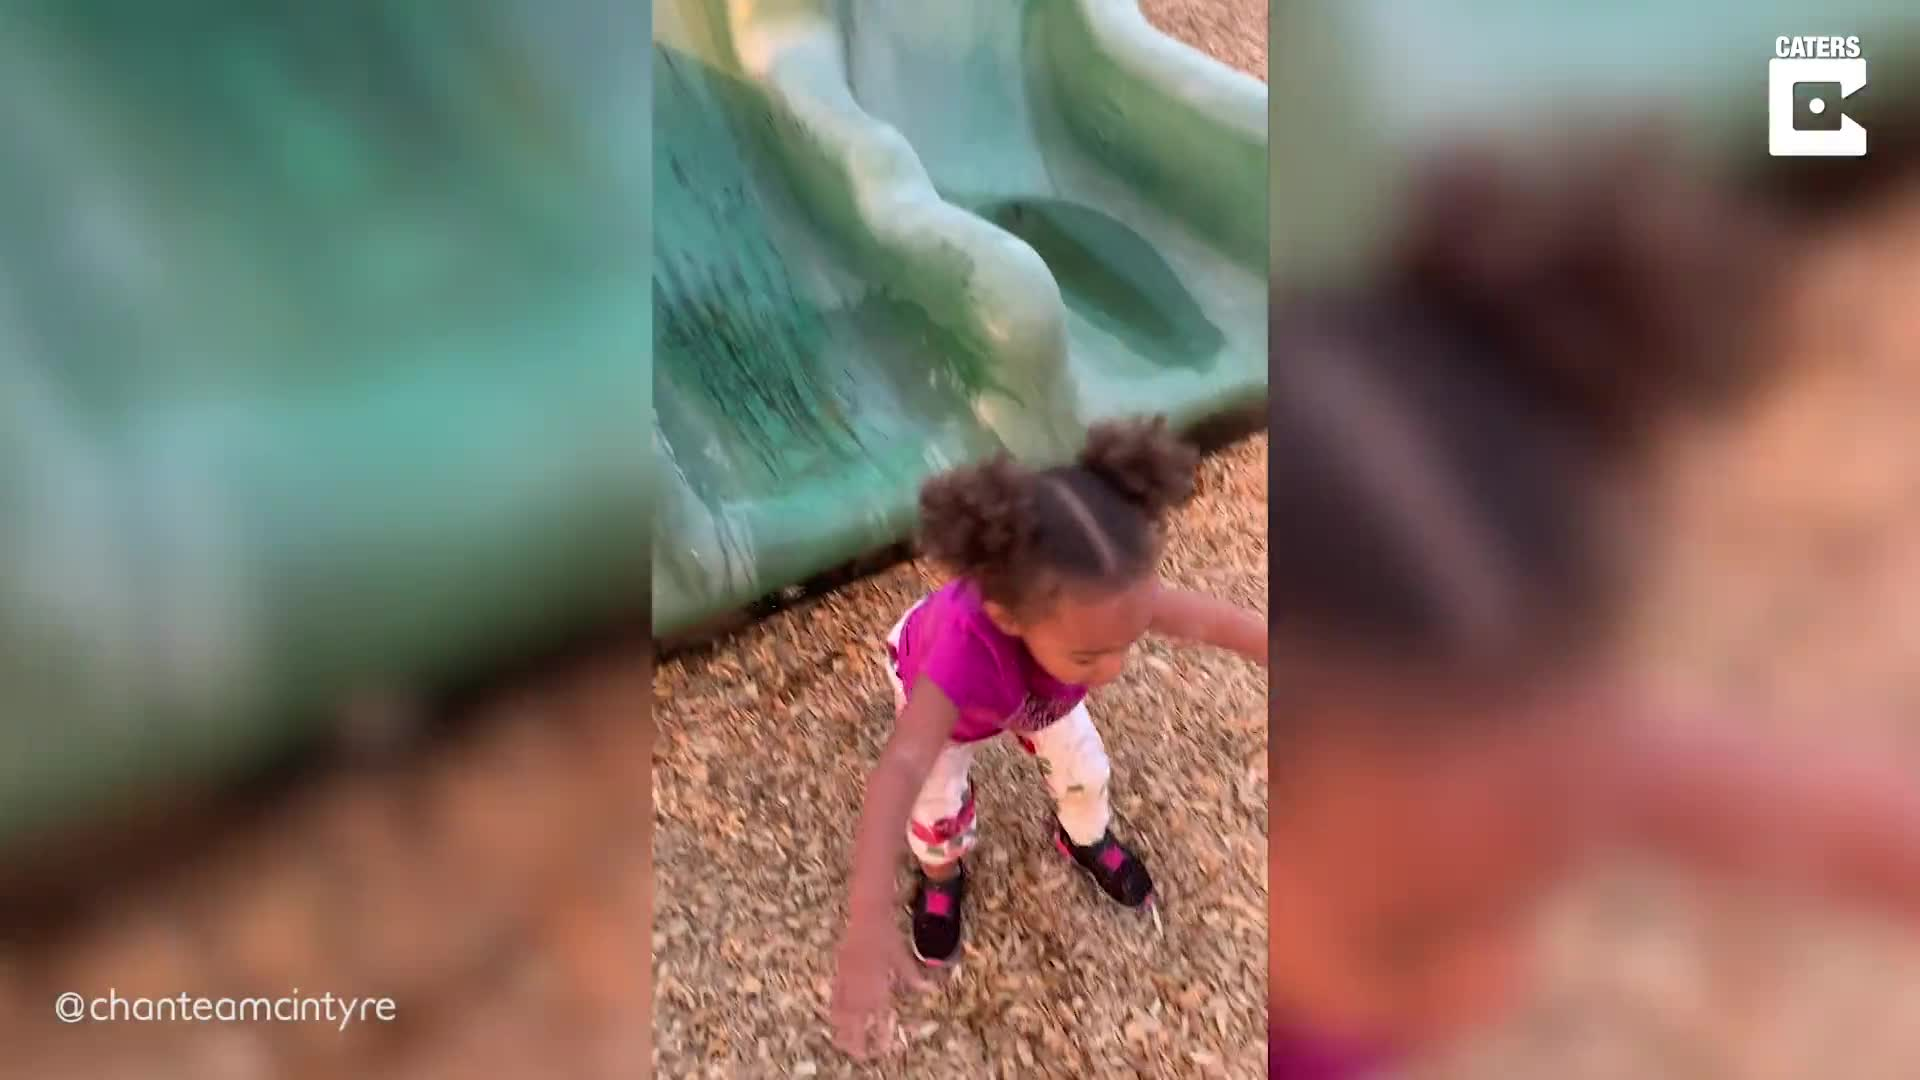 NOT THE IDEAL WATER SLIDE: LITTLE GIRL SLIDES STRAIGHT INTO A PUDDLE OF WATER